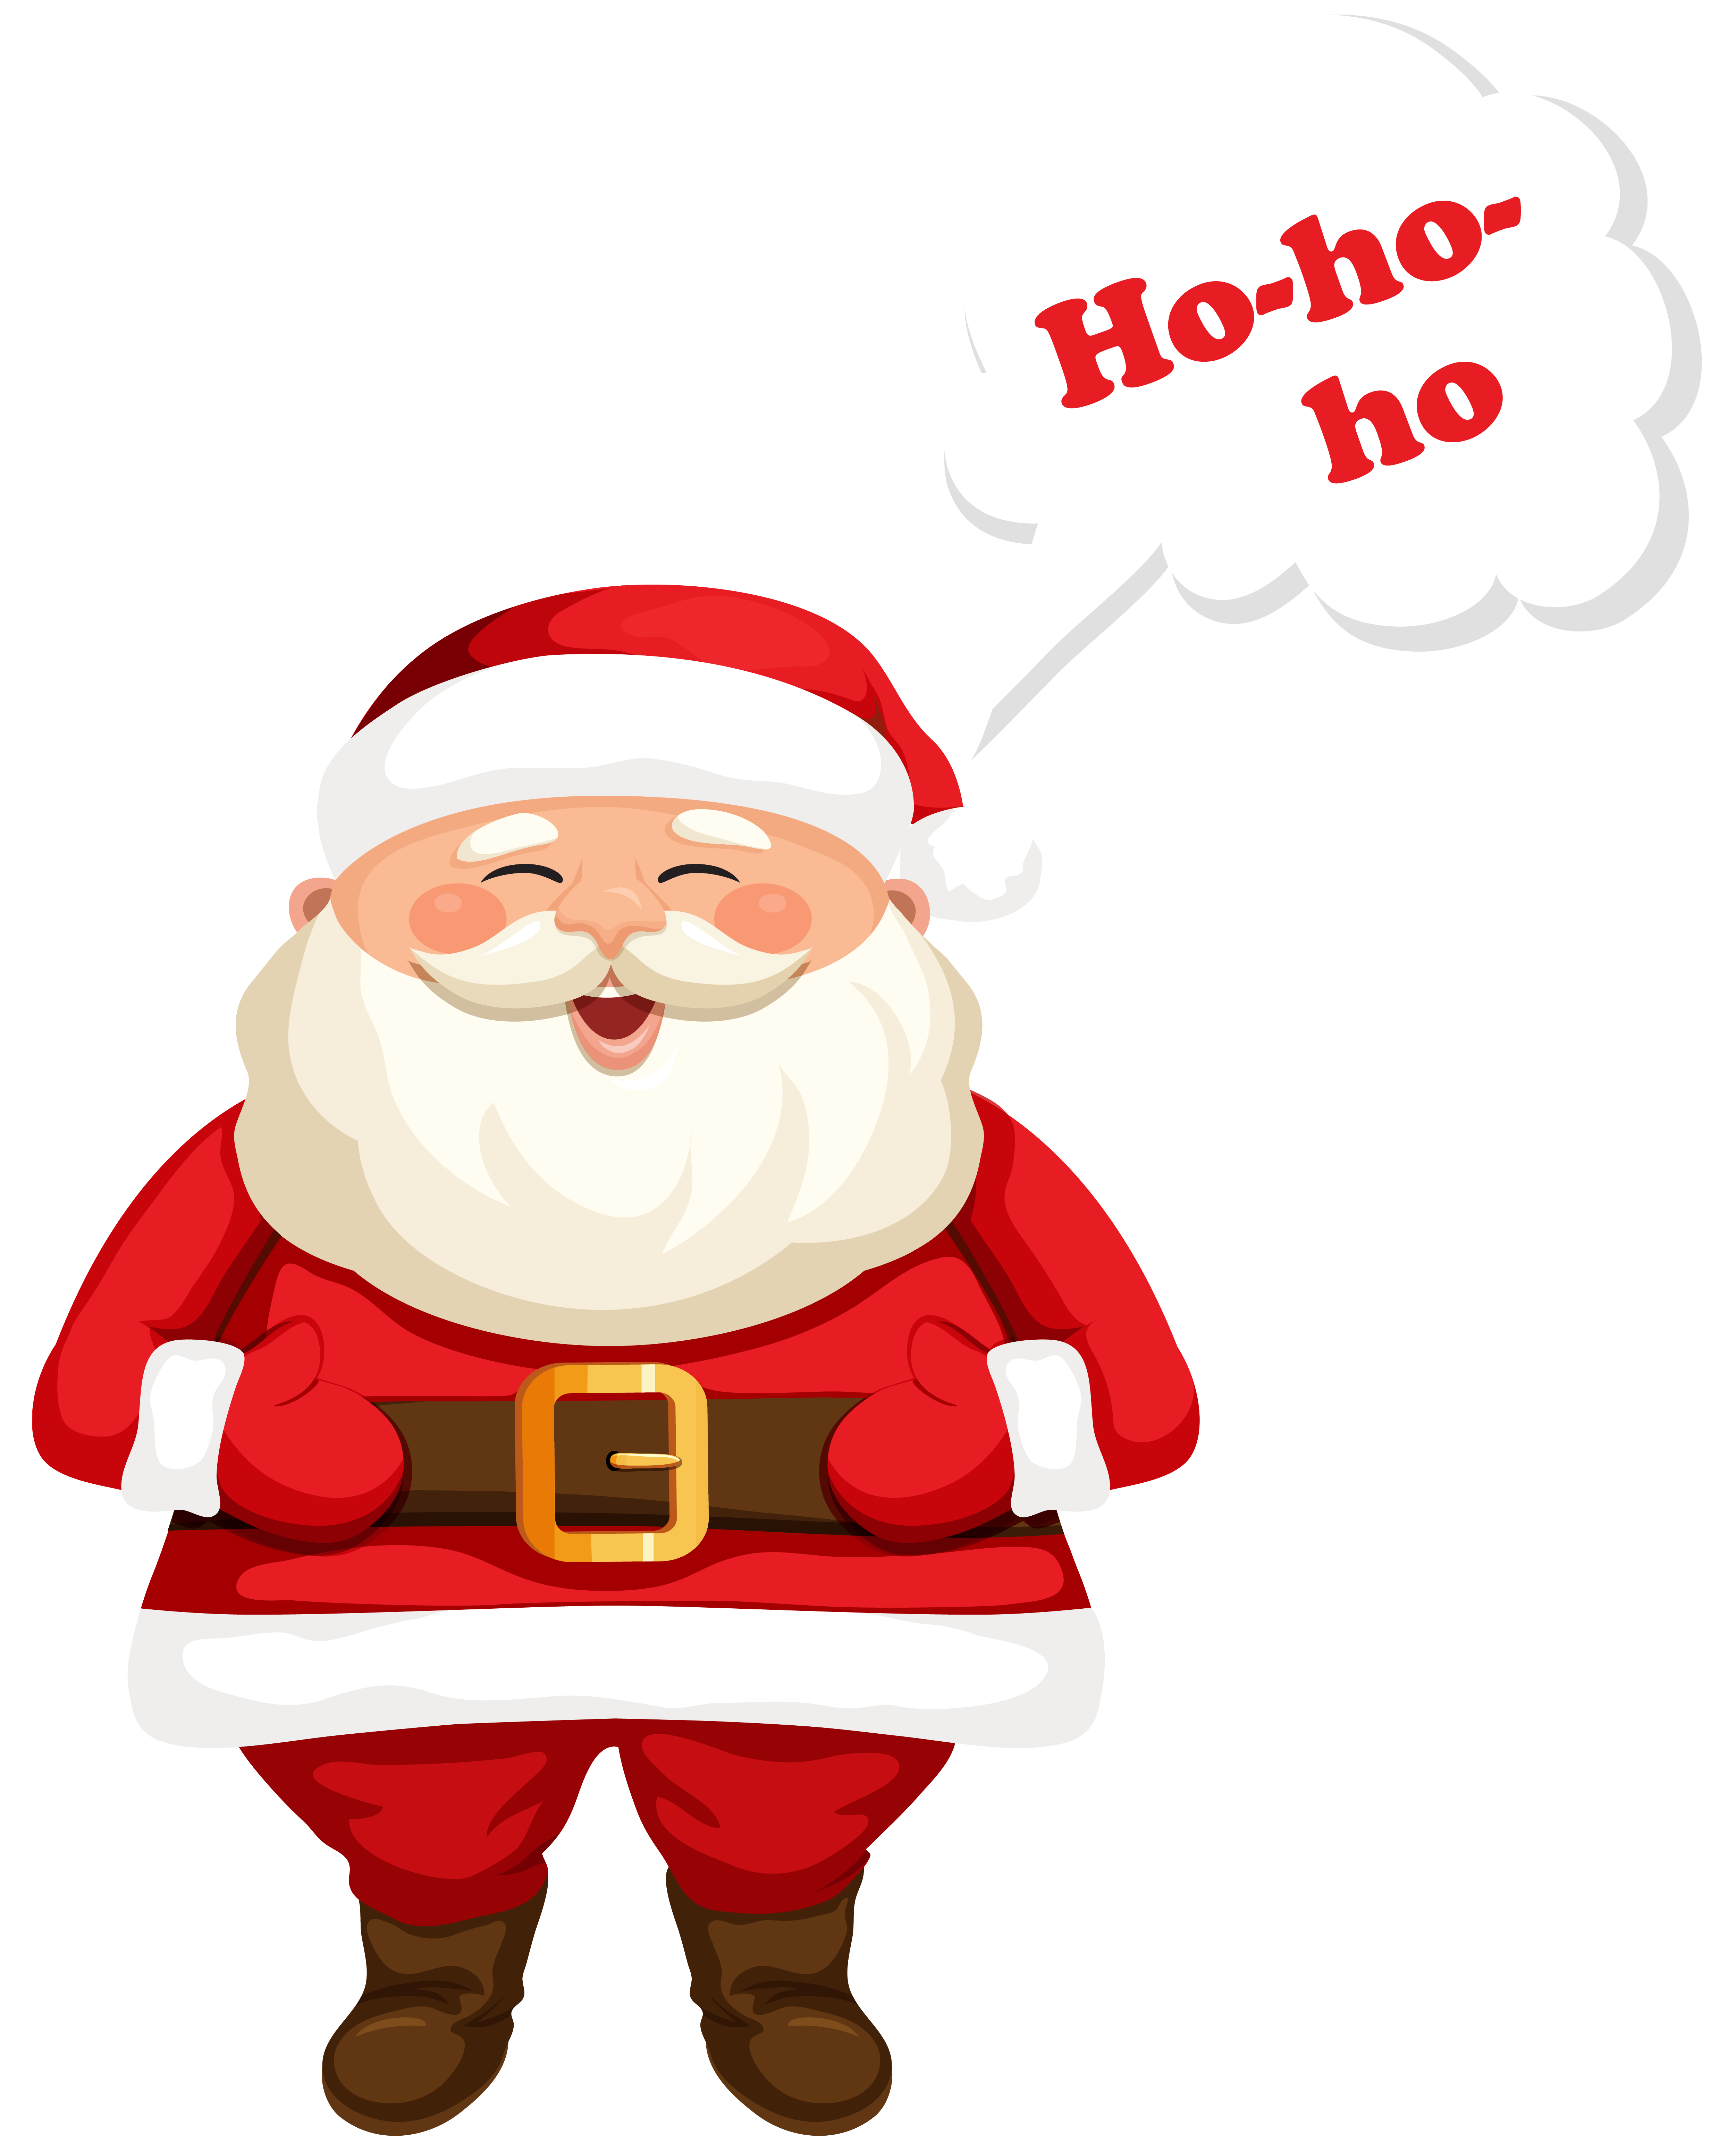 clipart library library Santa ho png image. Claus clipart clip art.